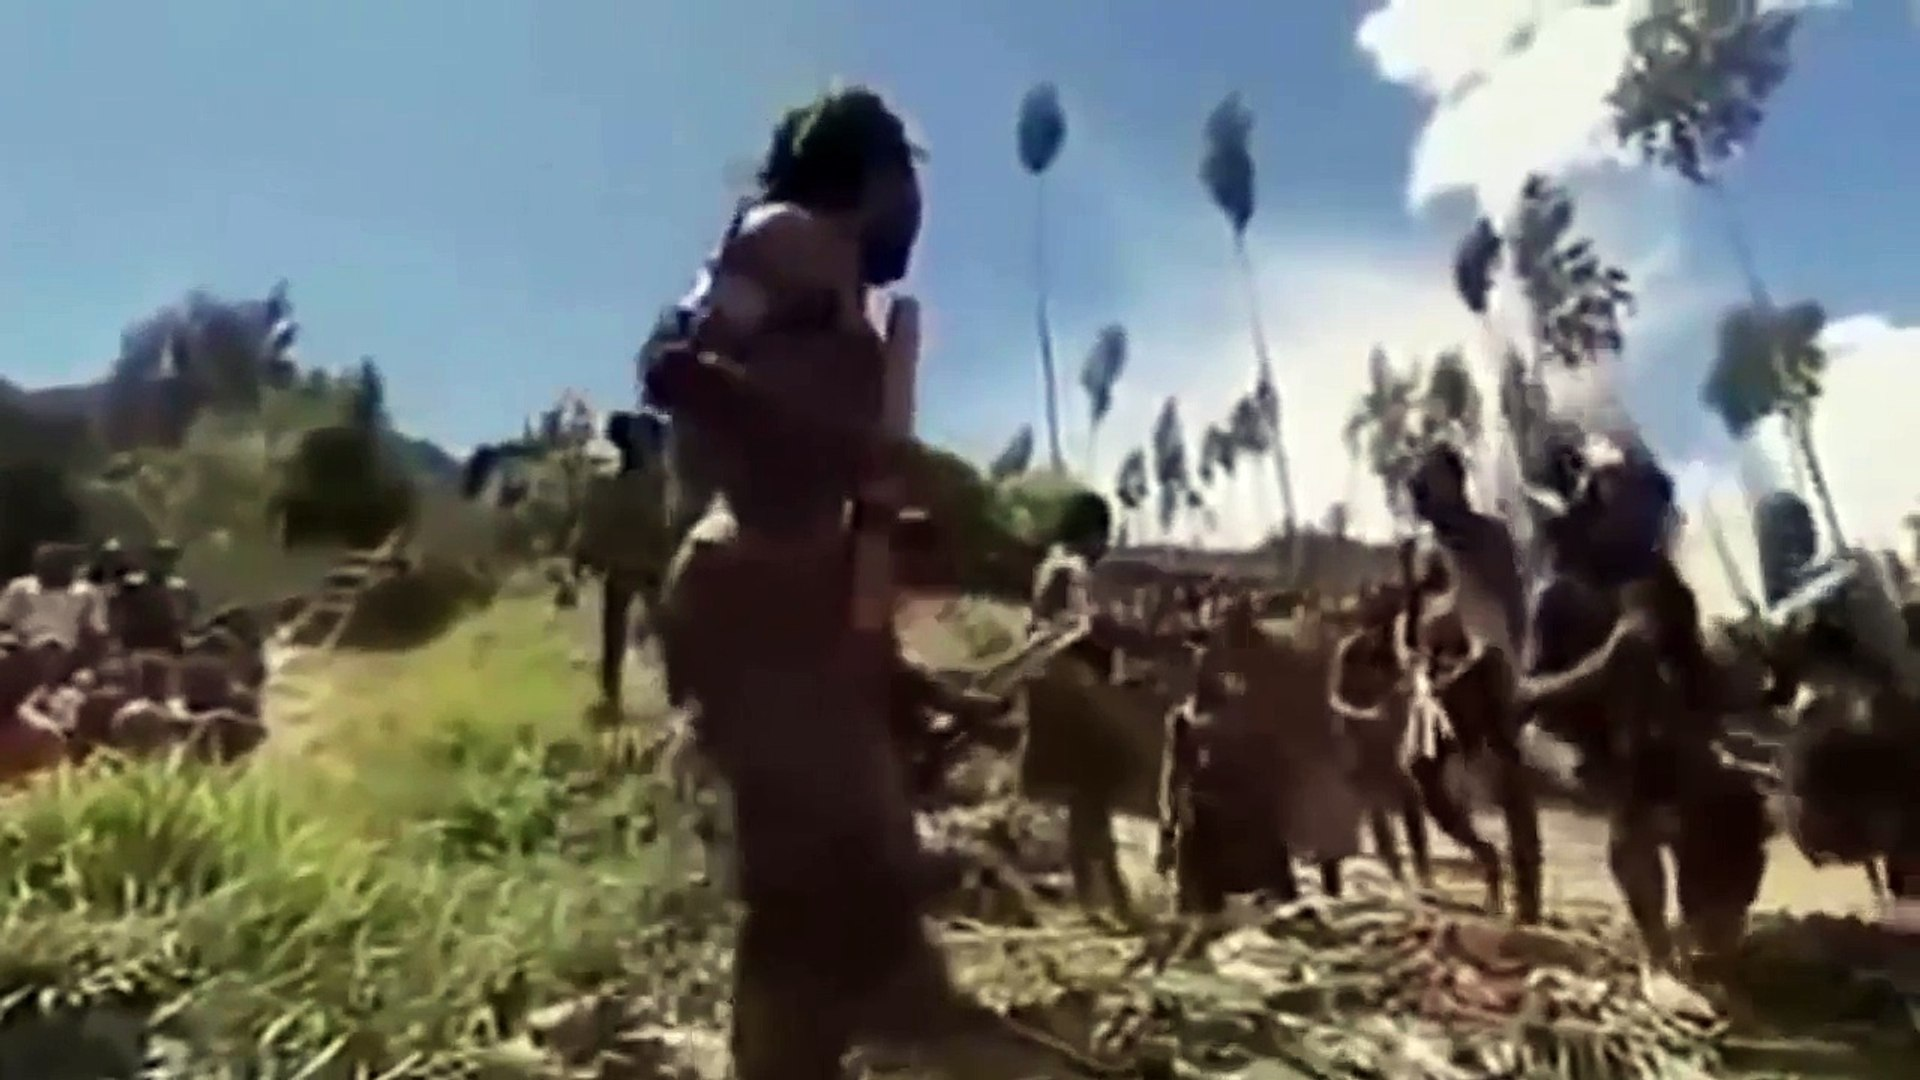 xxx Uncontacted Amazon Tribes - Isolated Tribes Of The Amazon Rainforest  Documentary#2